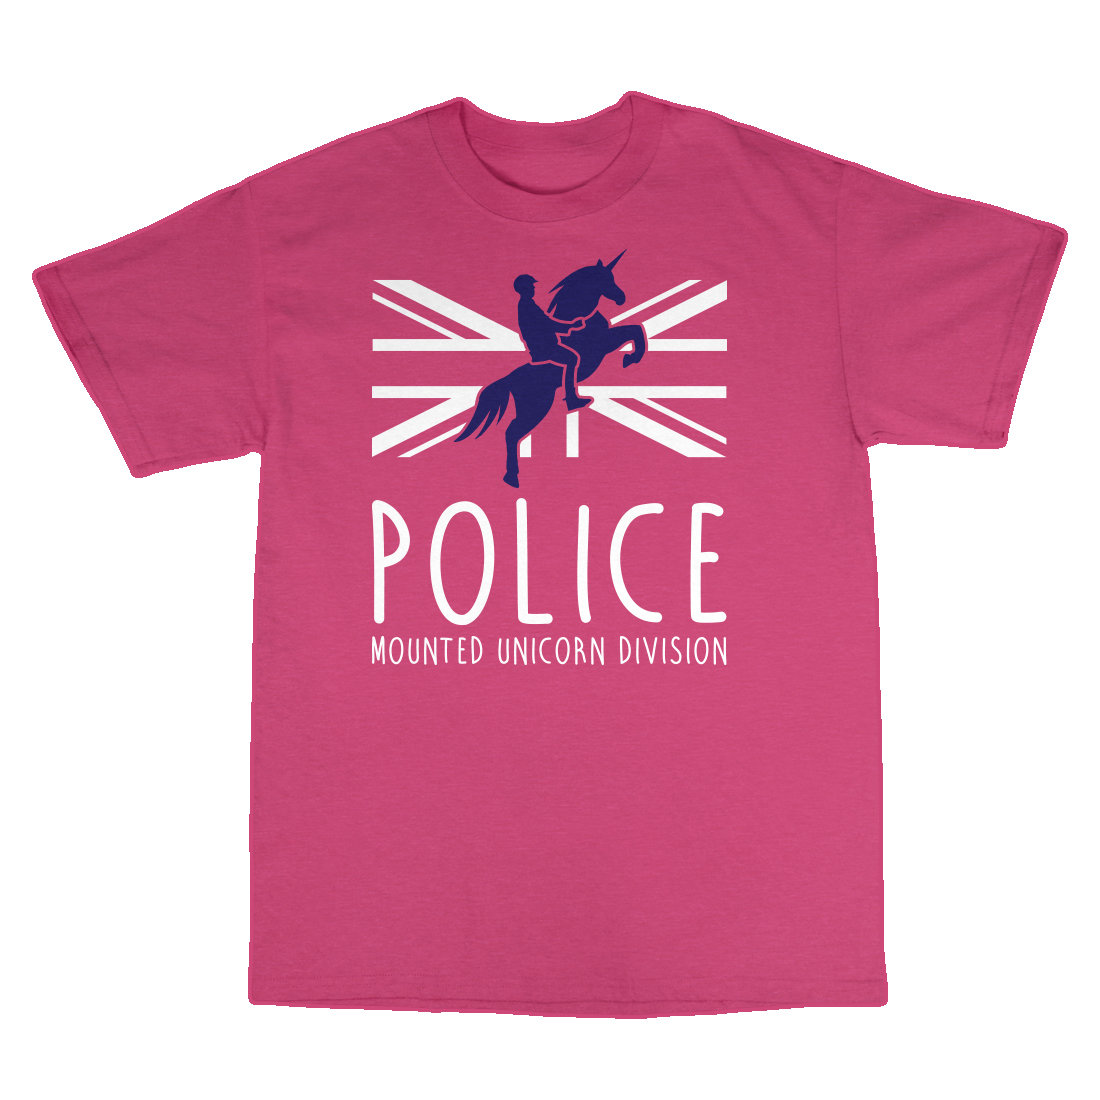 Children's 'Mounted Unicorn Division' T-Shirt MountedUnicornDivisionT